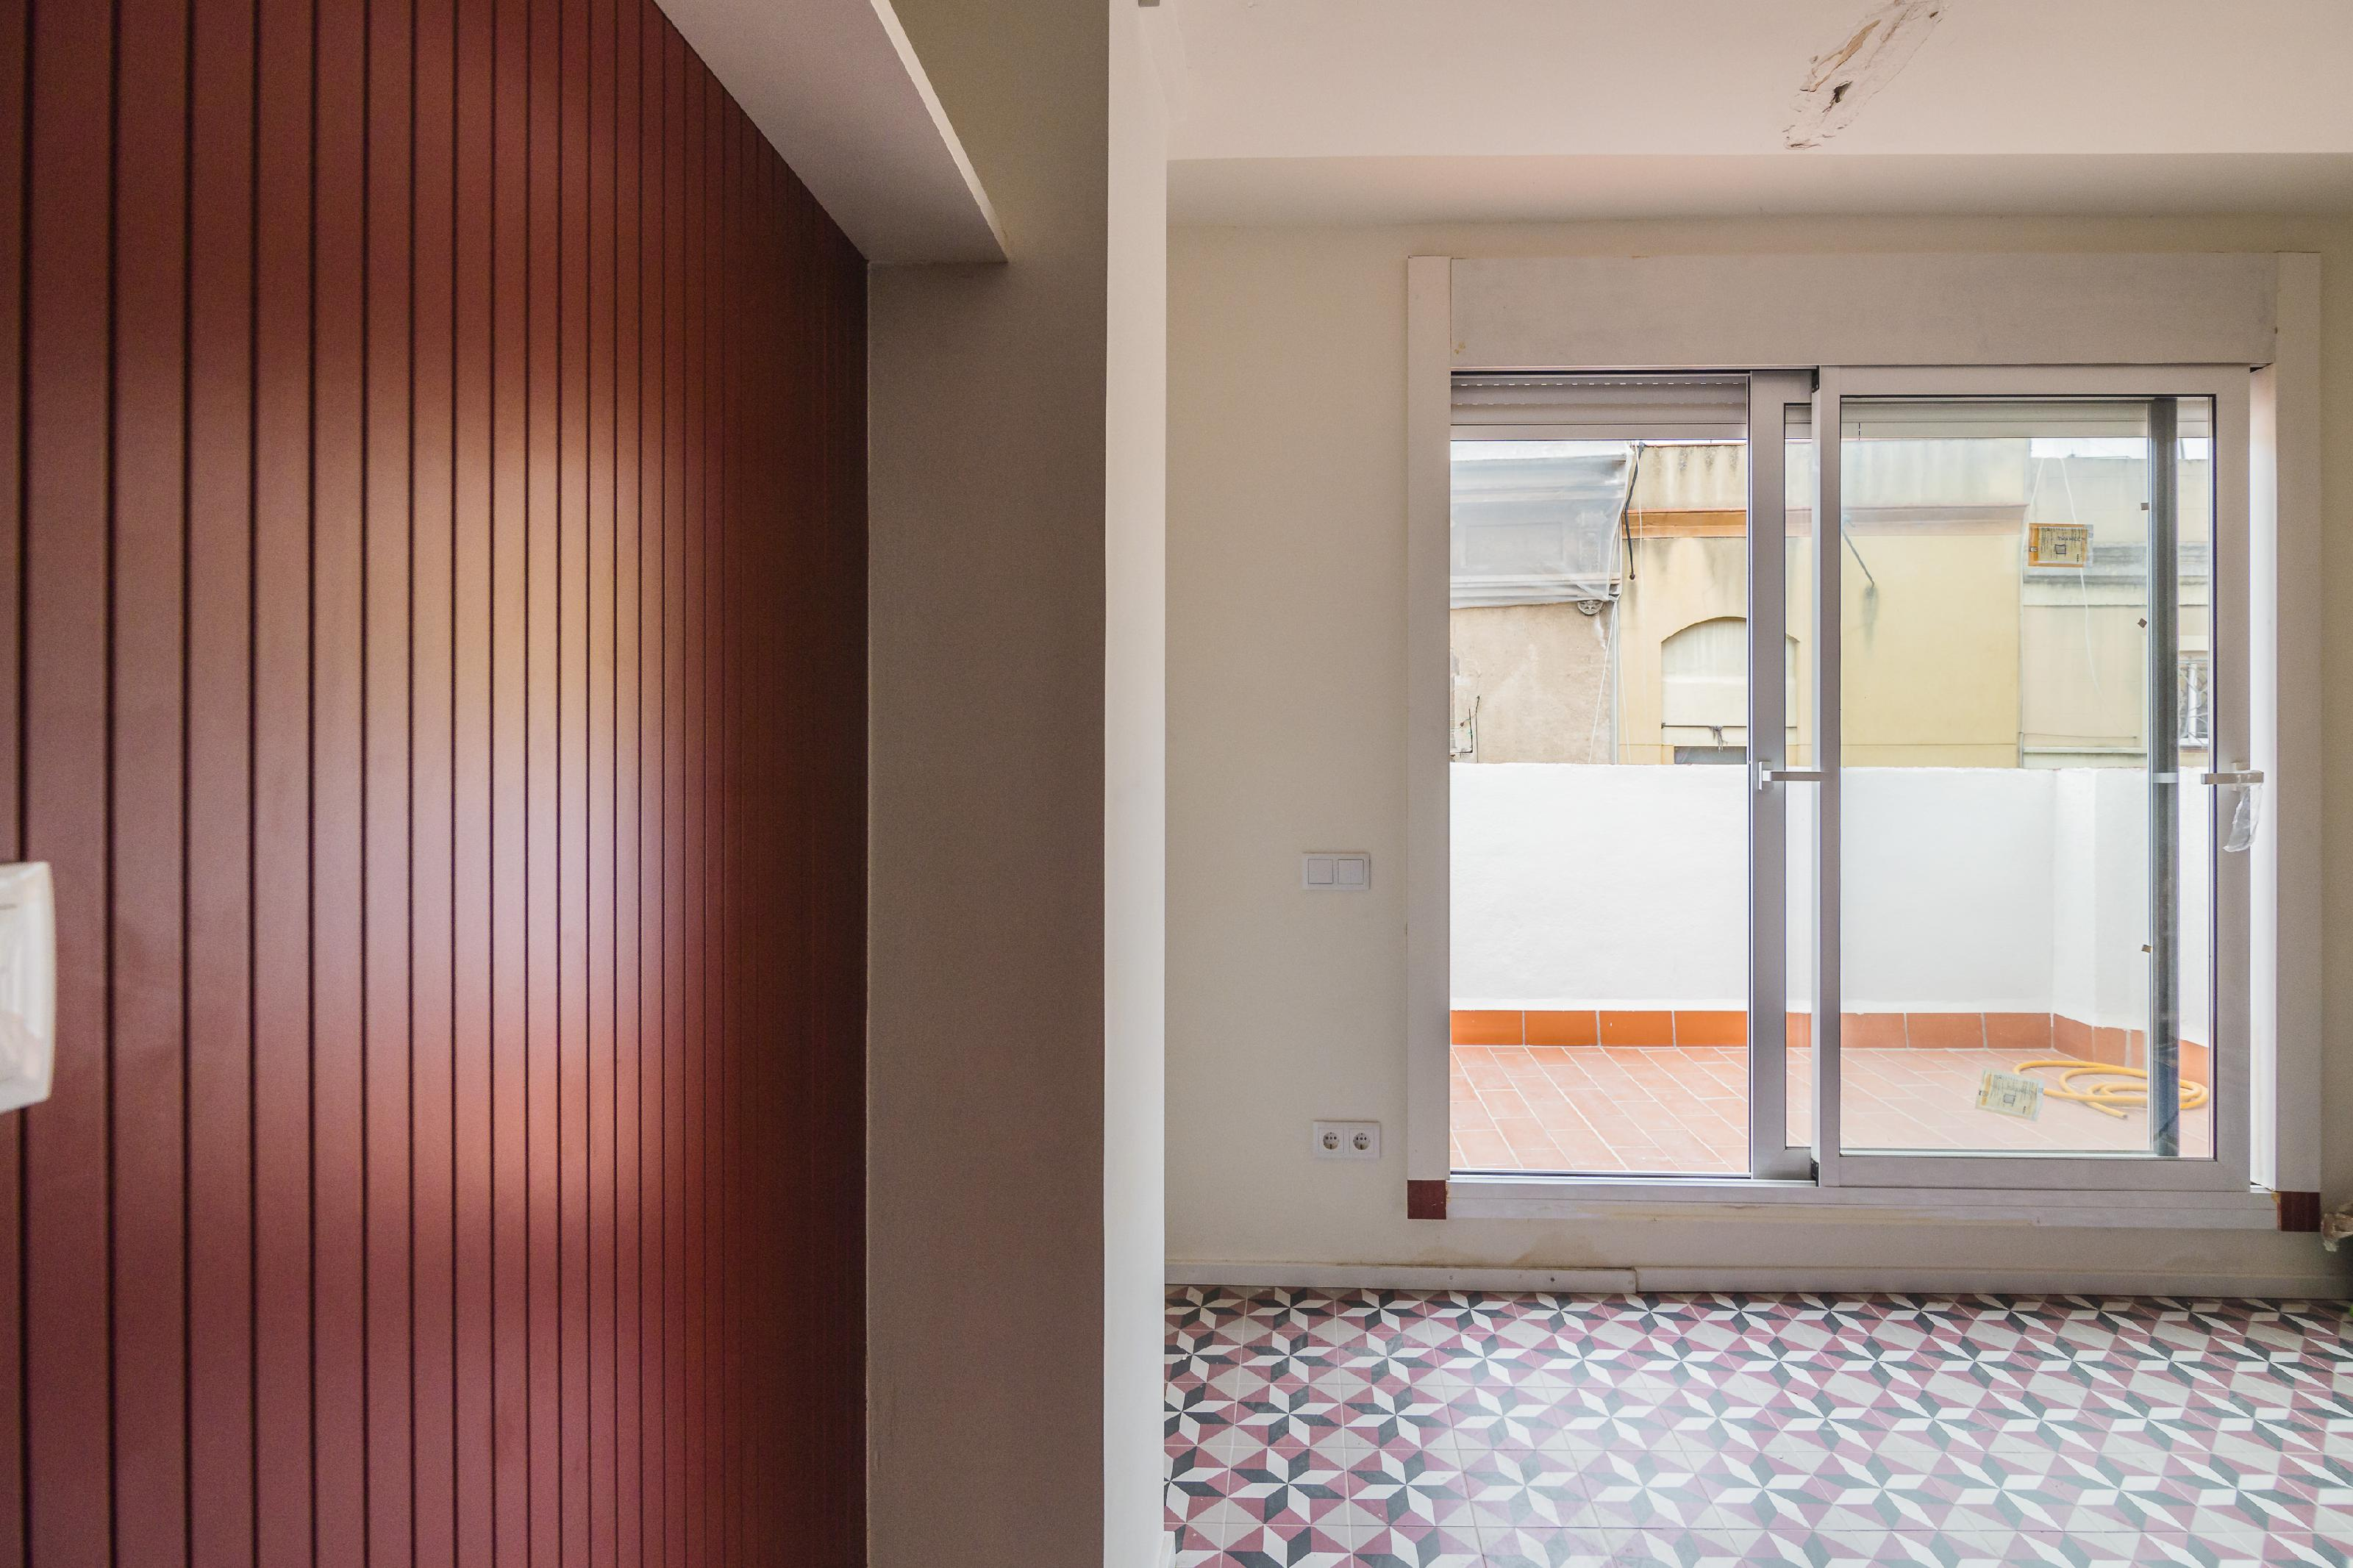 237520 Flat for sale in Ciutat Vella, St. Pere St. Caterina and La Ribera 10